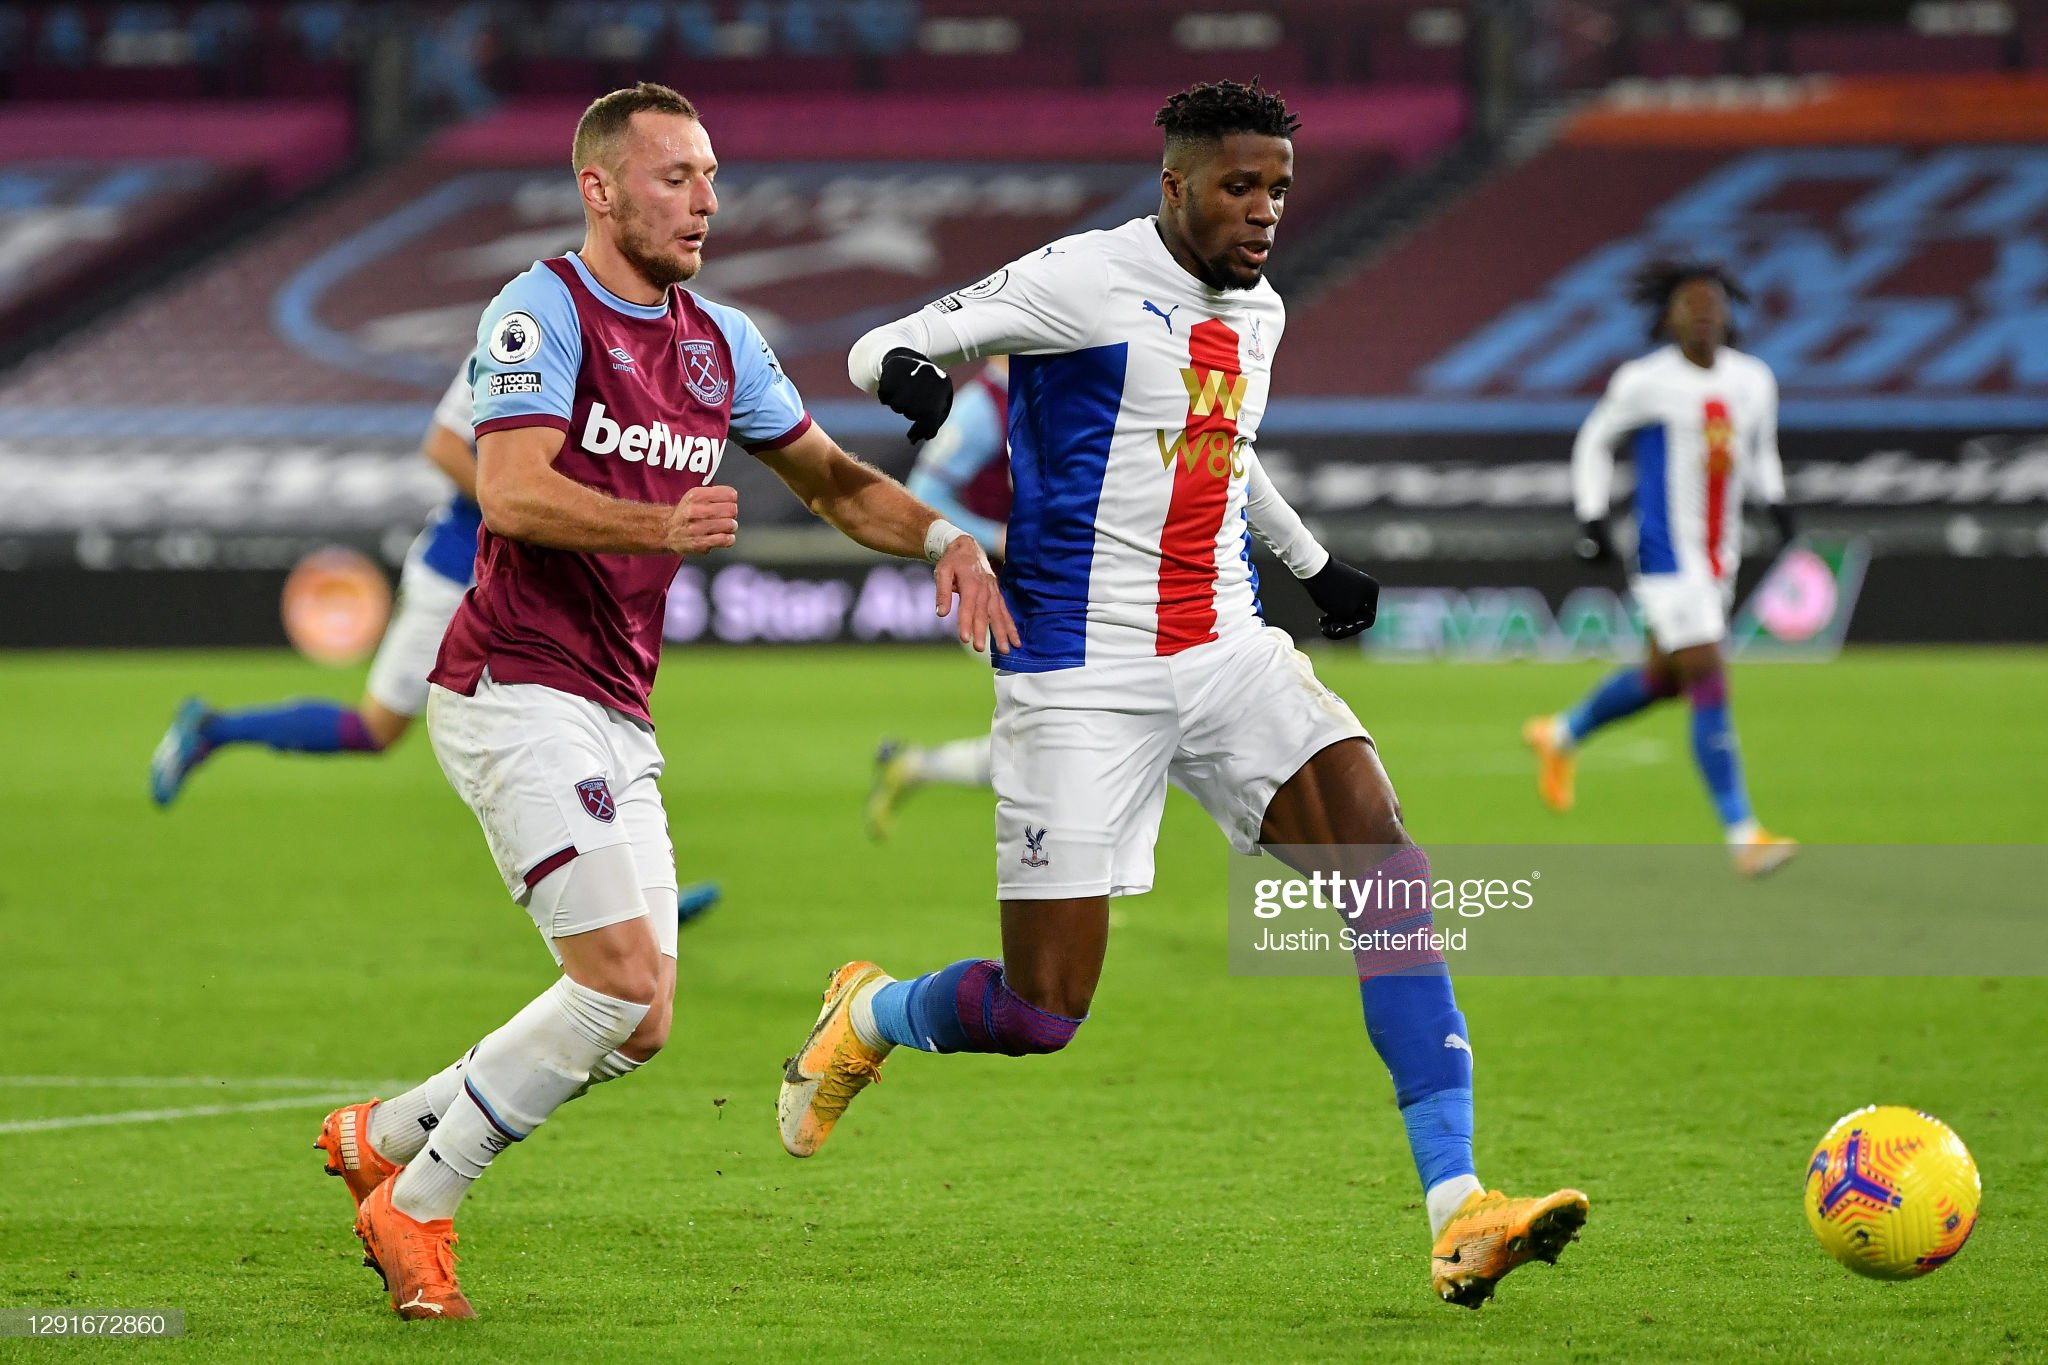 Crystal Palace vs West Ham preview, prediction and odds